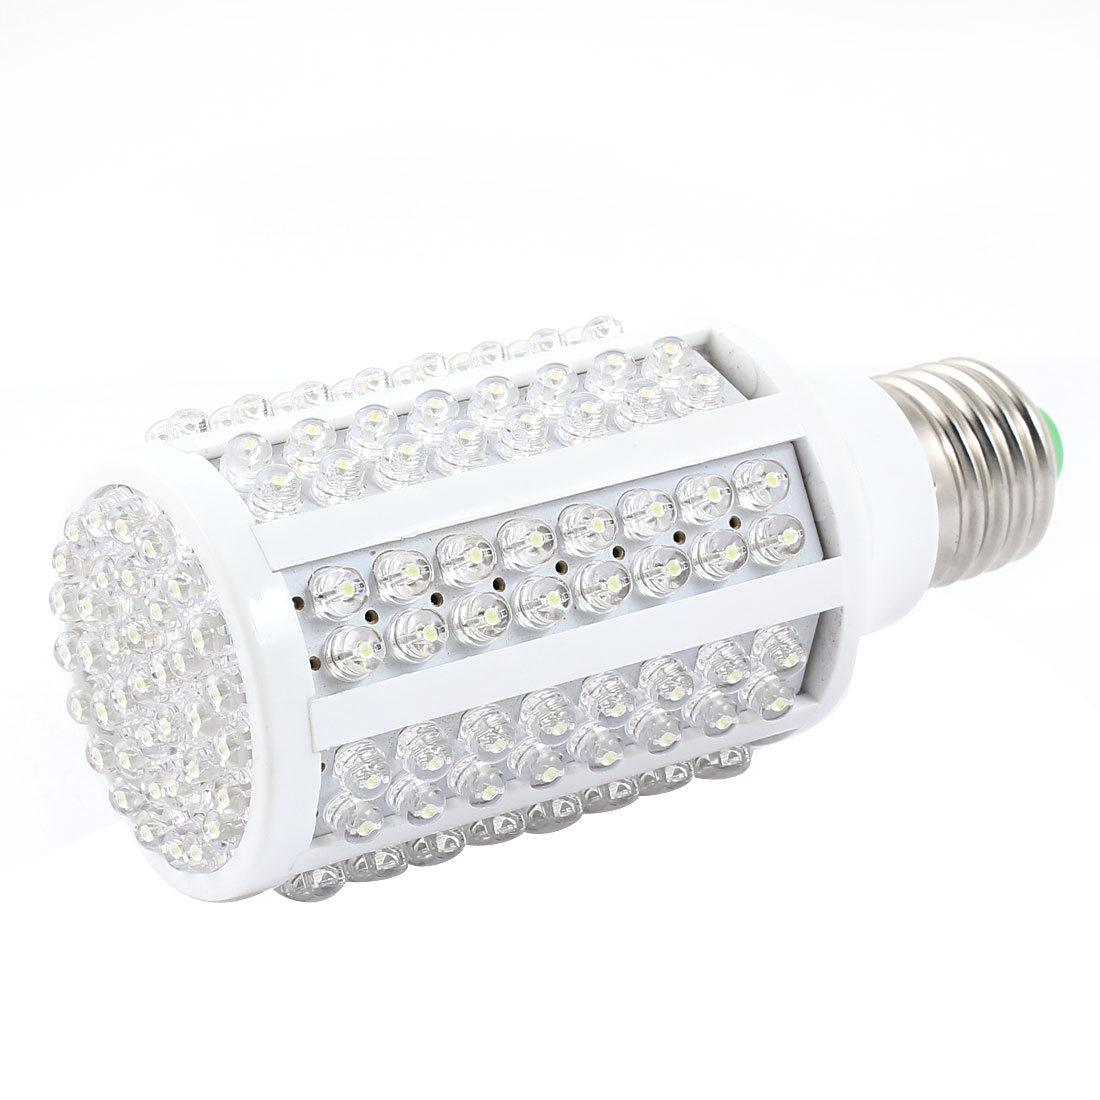 AC 110/220V 996LM E27 Socket Cool White 166 F5 LEDs Light Lamp Bulb 11W